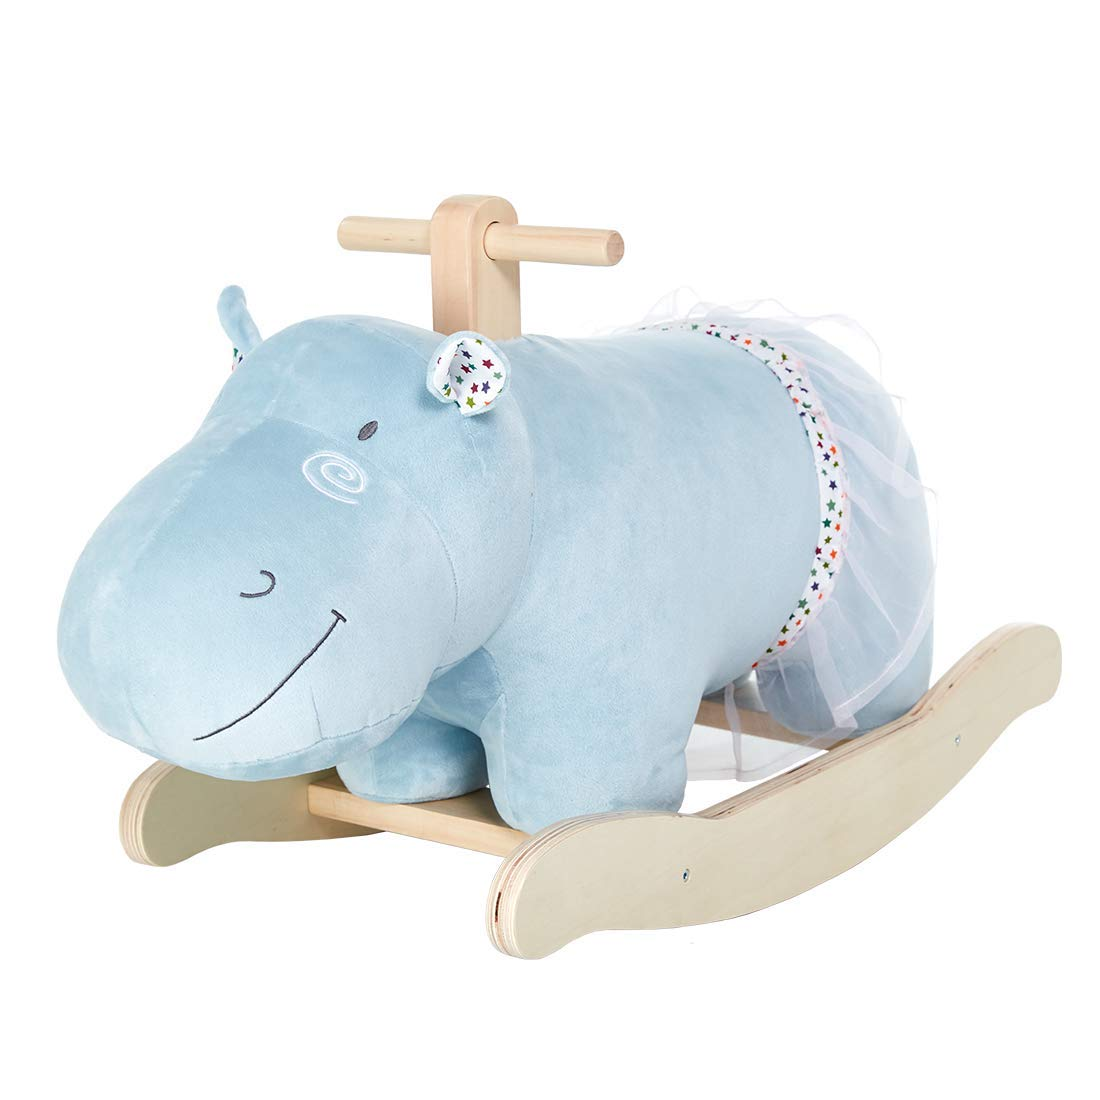 labebe Rocking Horse for Toddlers, Hippo Wooden Rocker for Baby Girl & Boy 1-3 Year Old